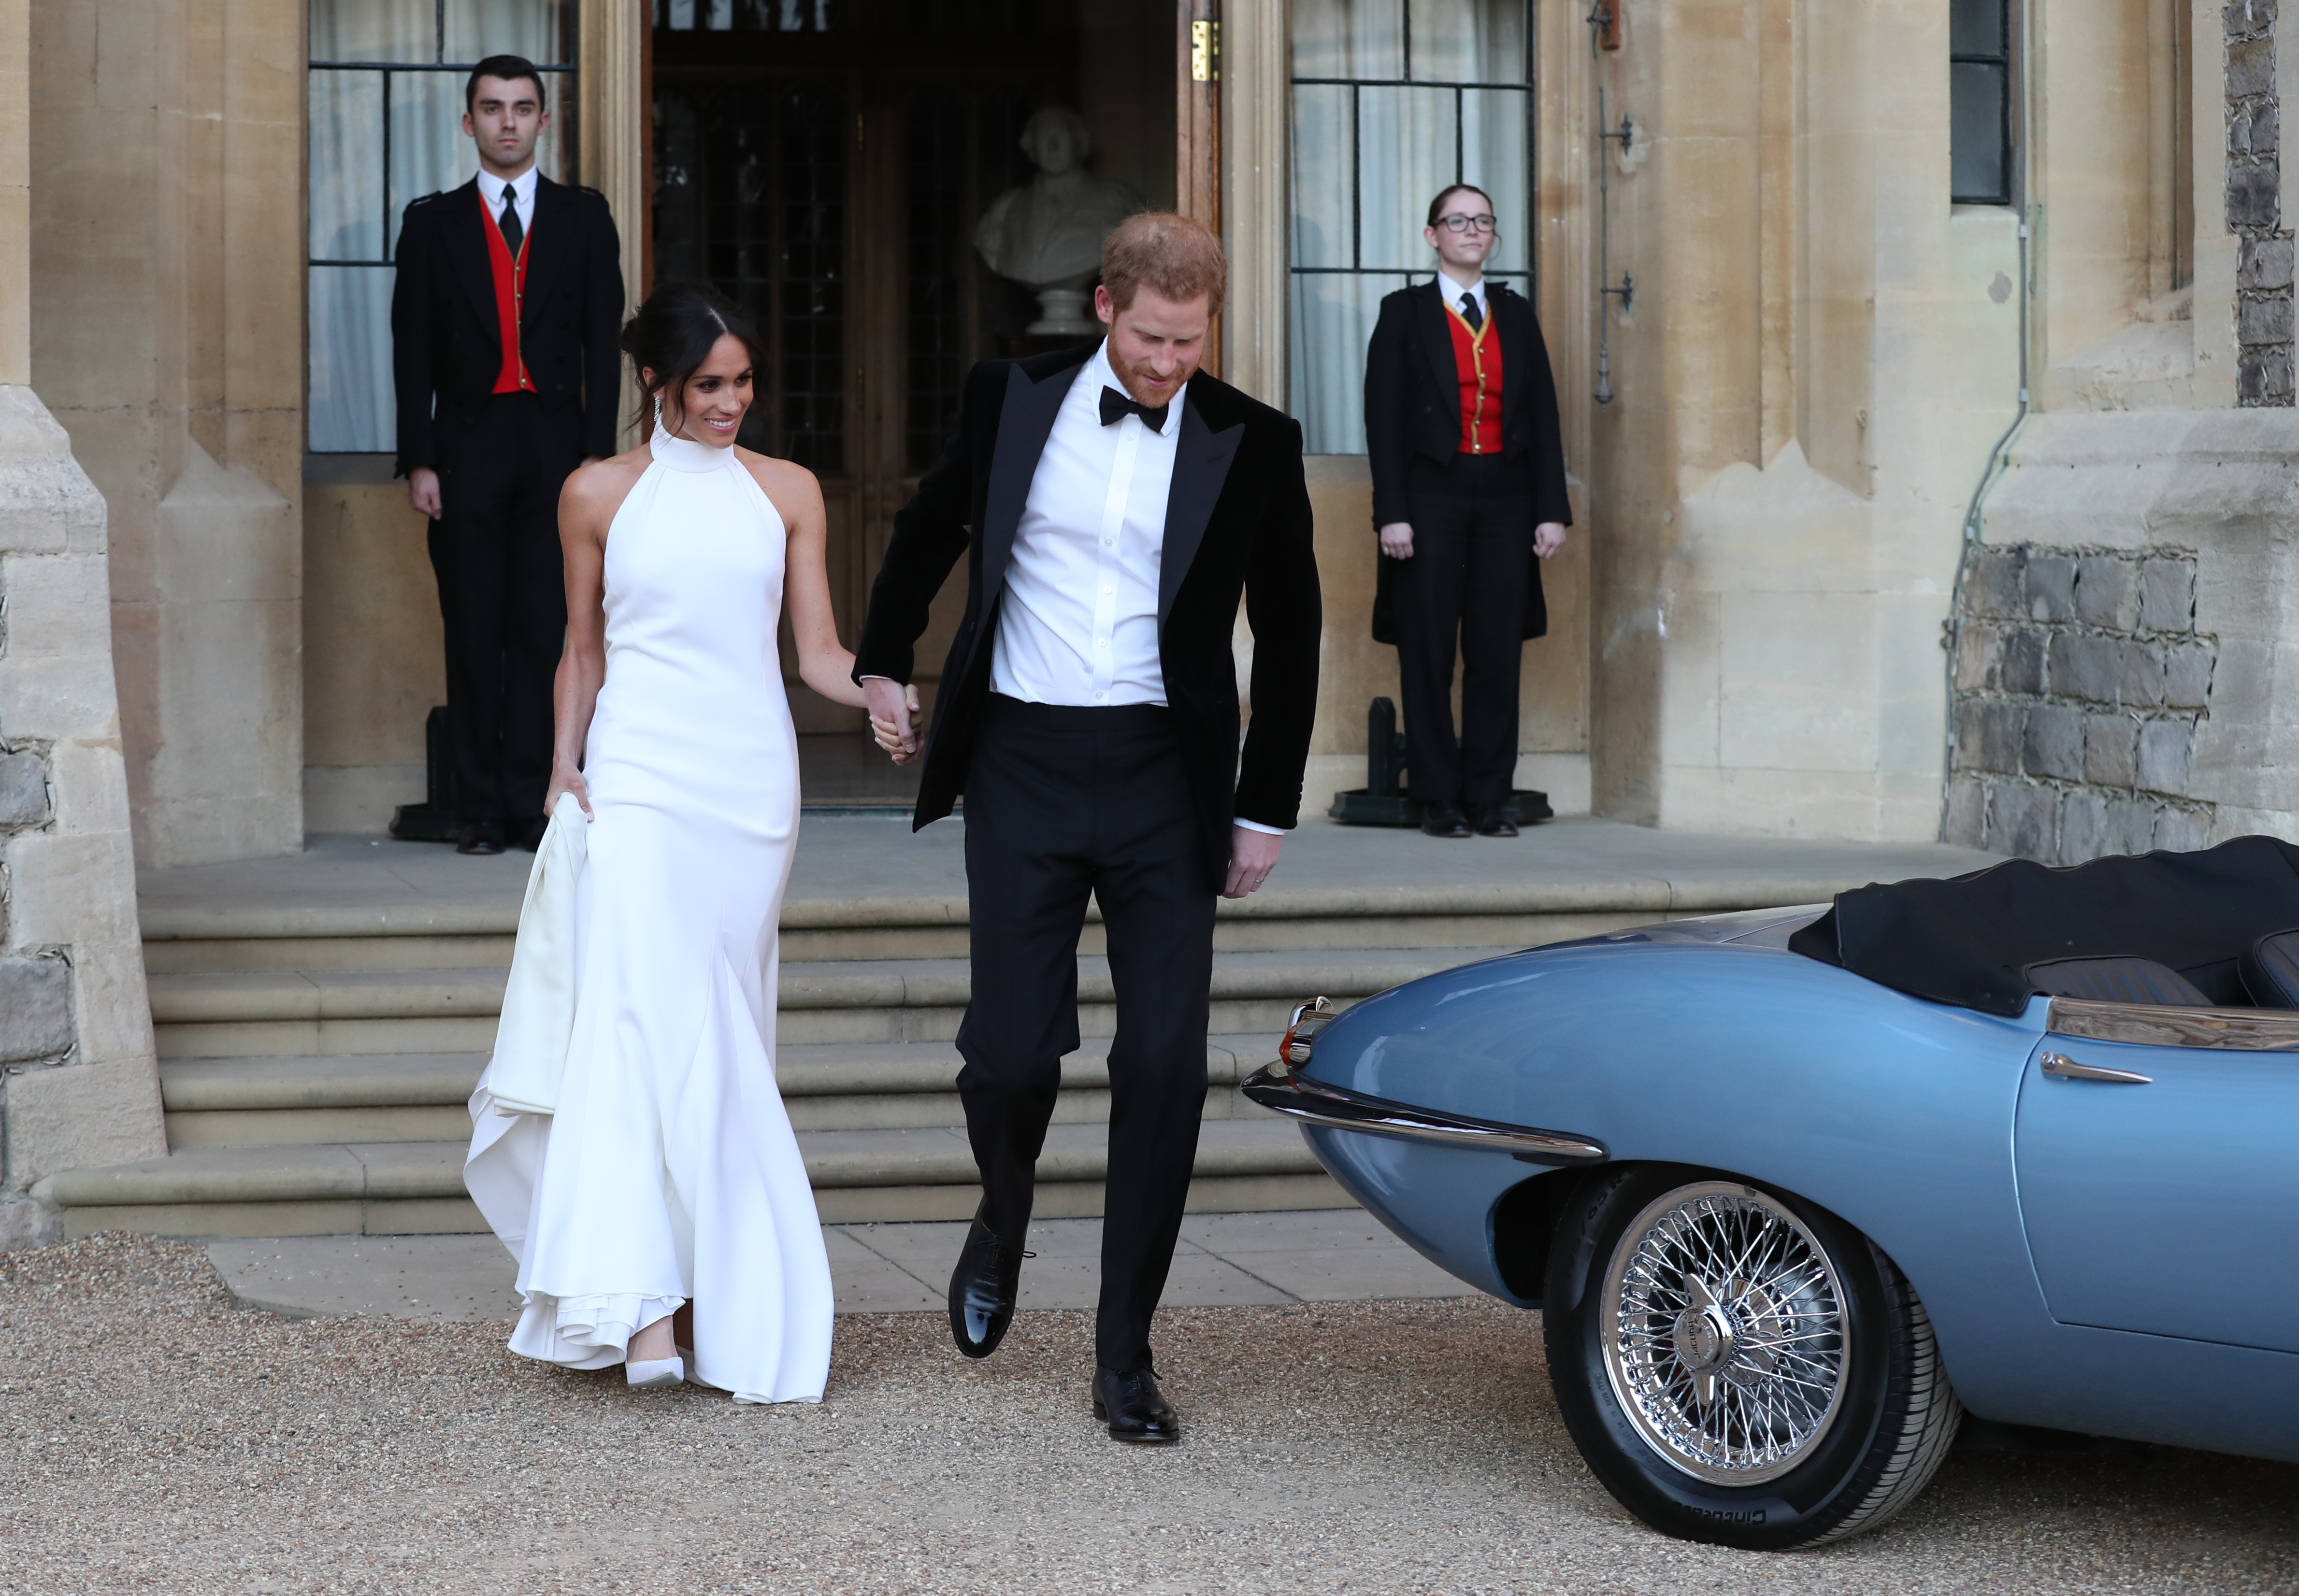 Meghan Markle and Prince Harry walking hand in hand to blue car to wedding reception